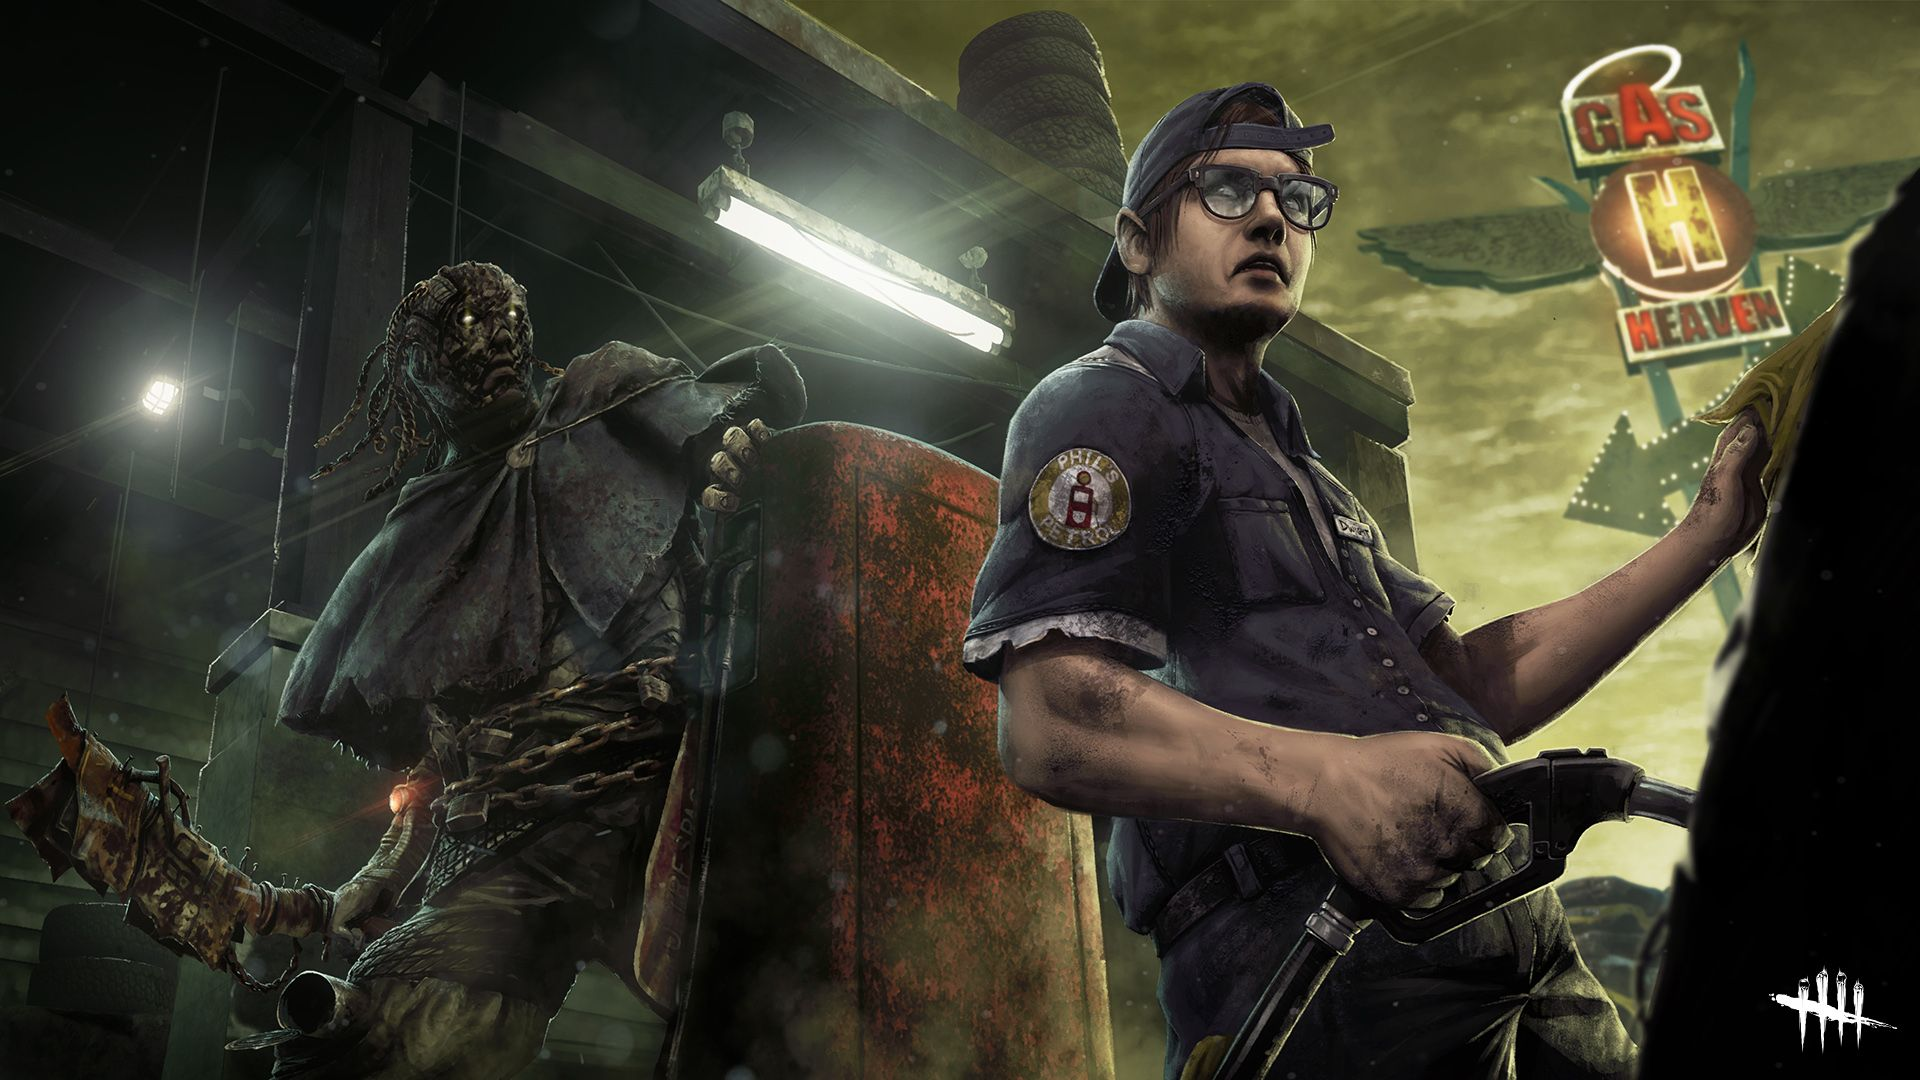 Dwight Fairfield and The Wraith in 2020 Daylight, Dead